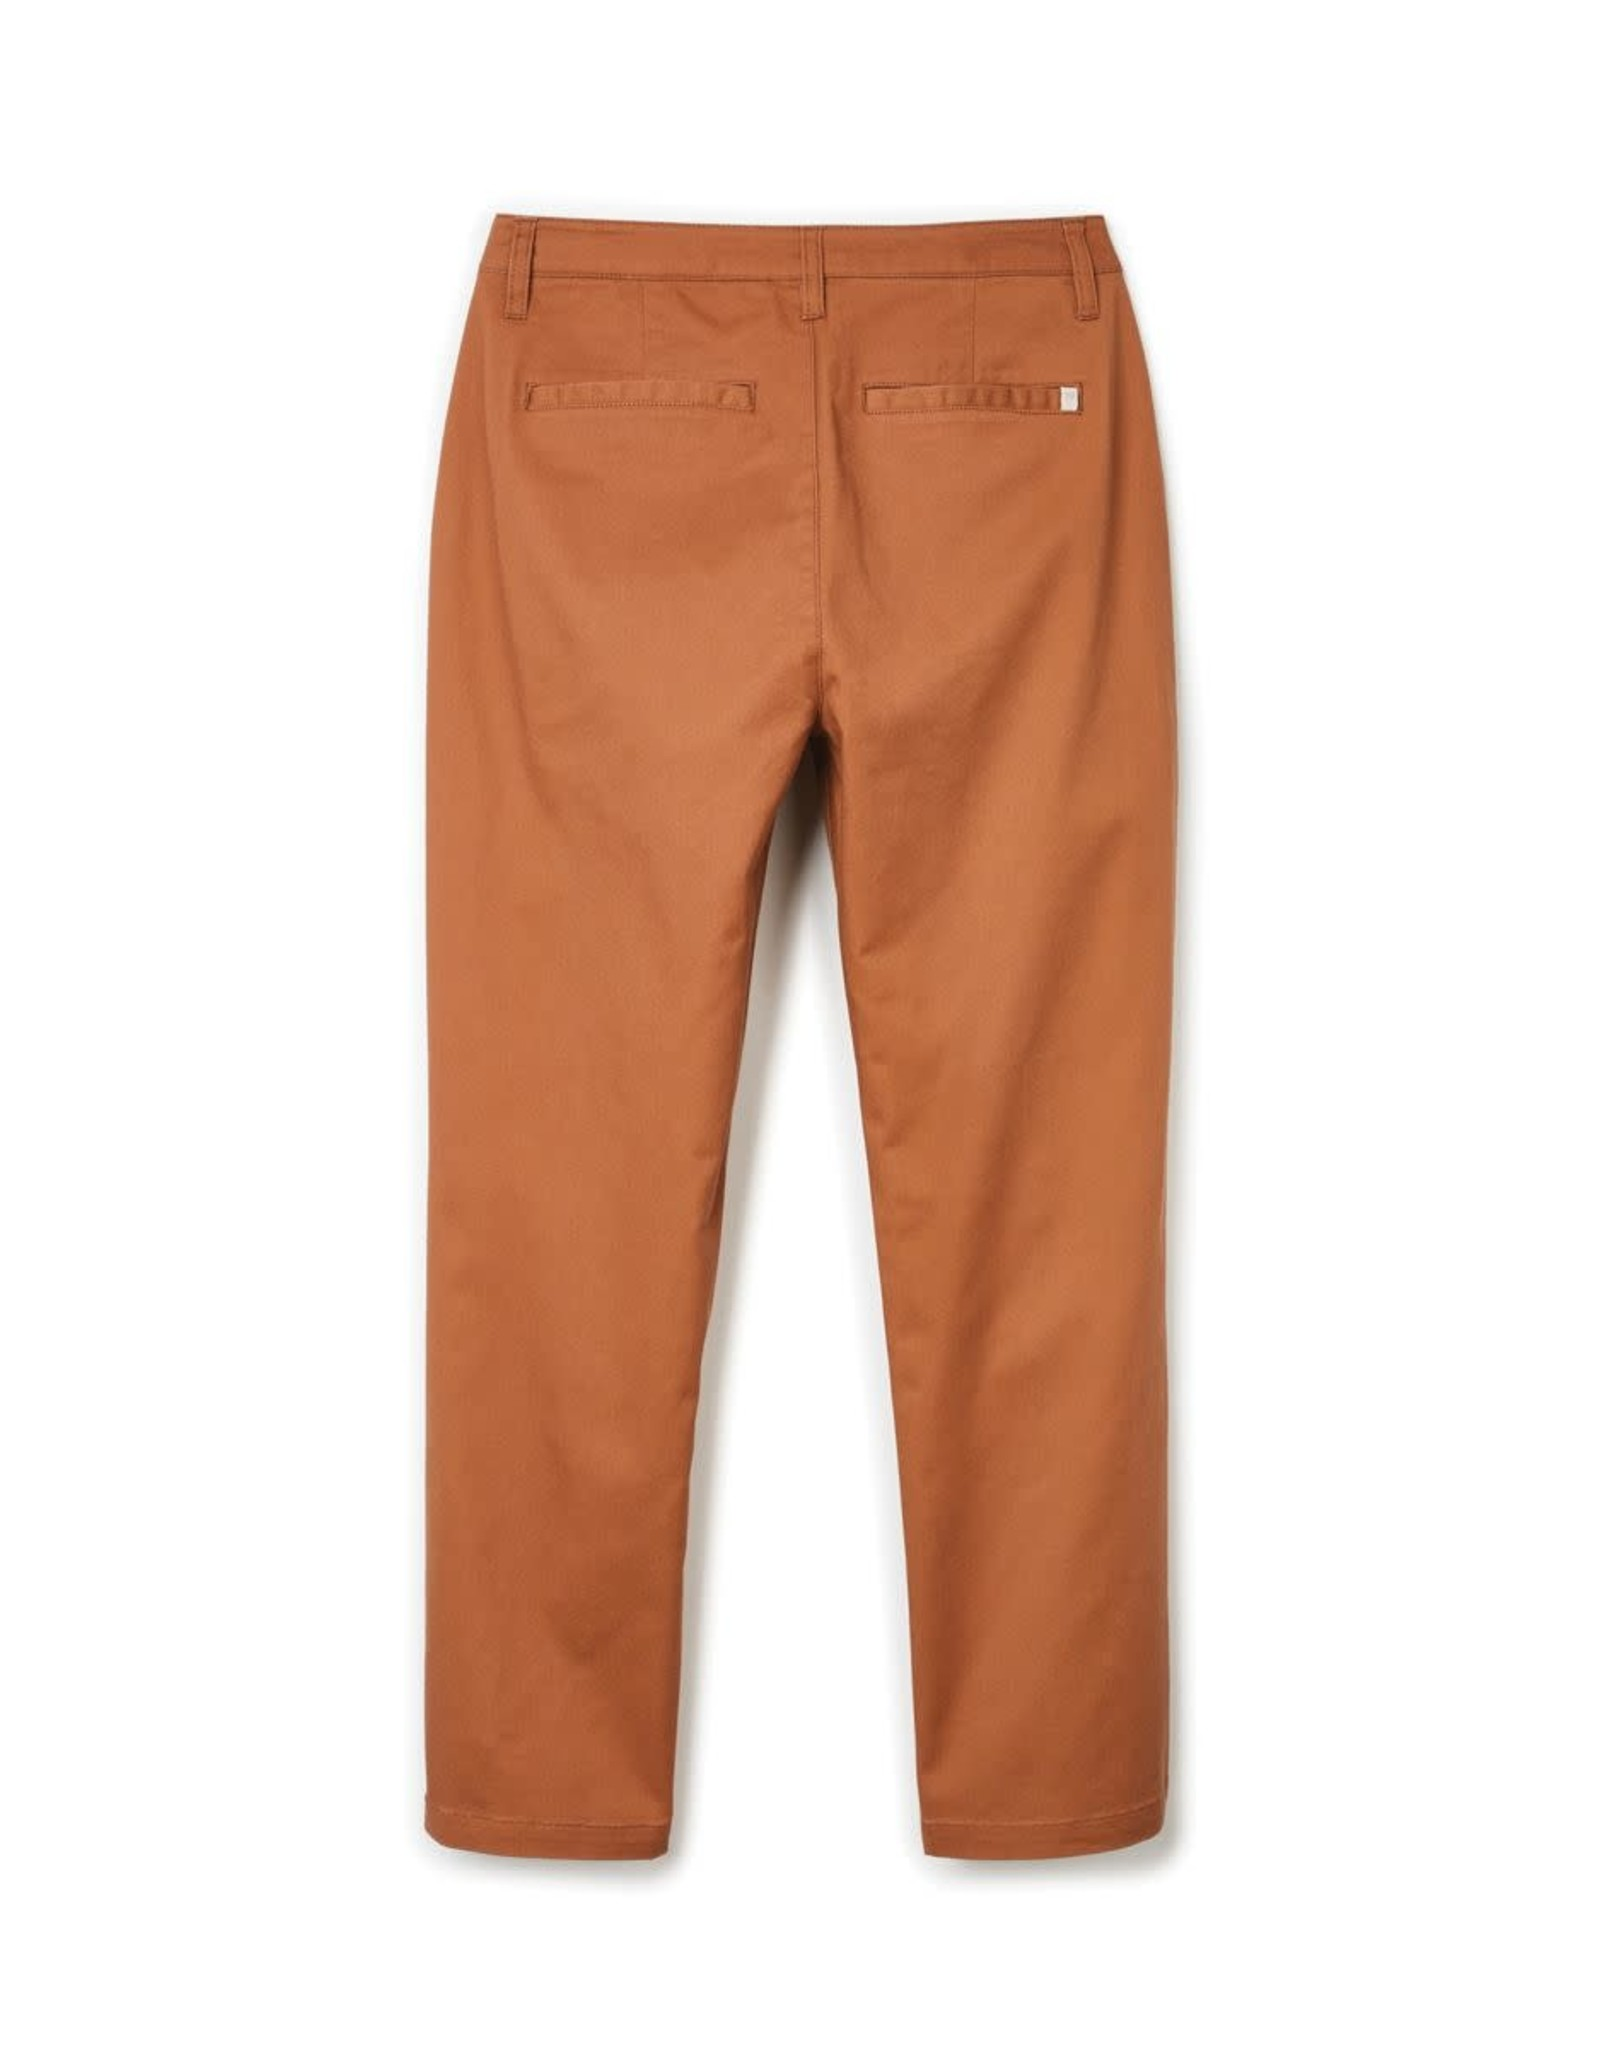 BRIXTON VICTORY PANT, ALSO in BLACK